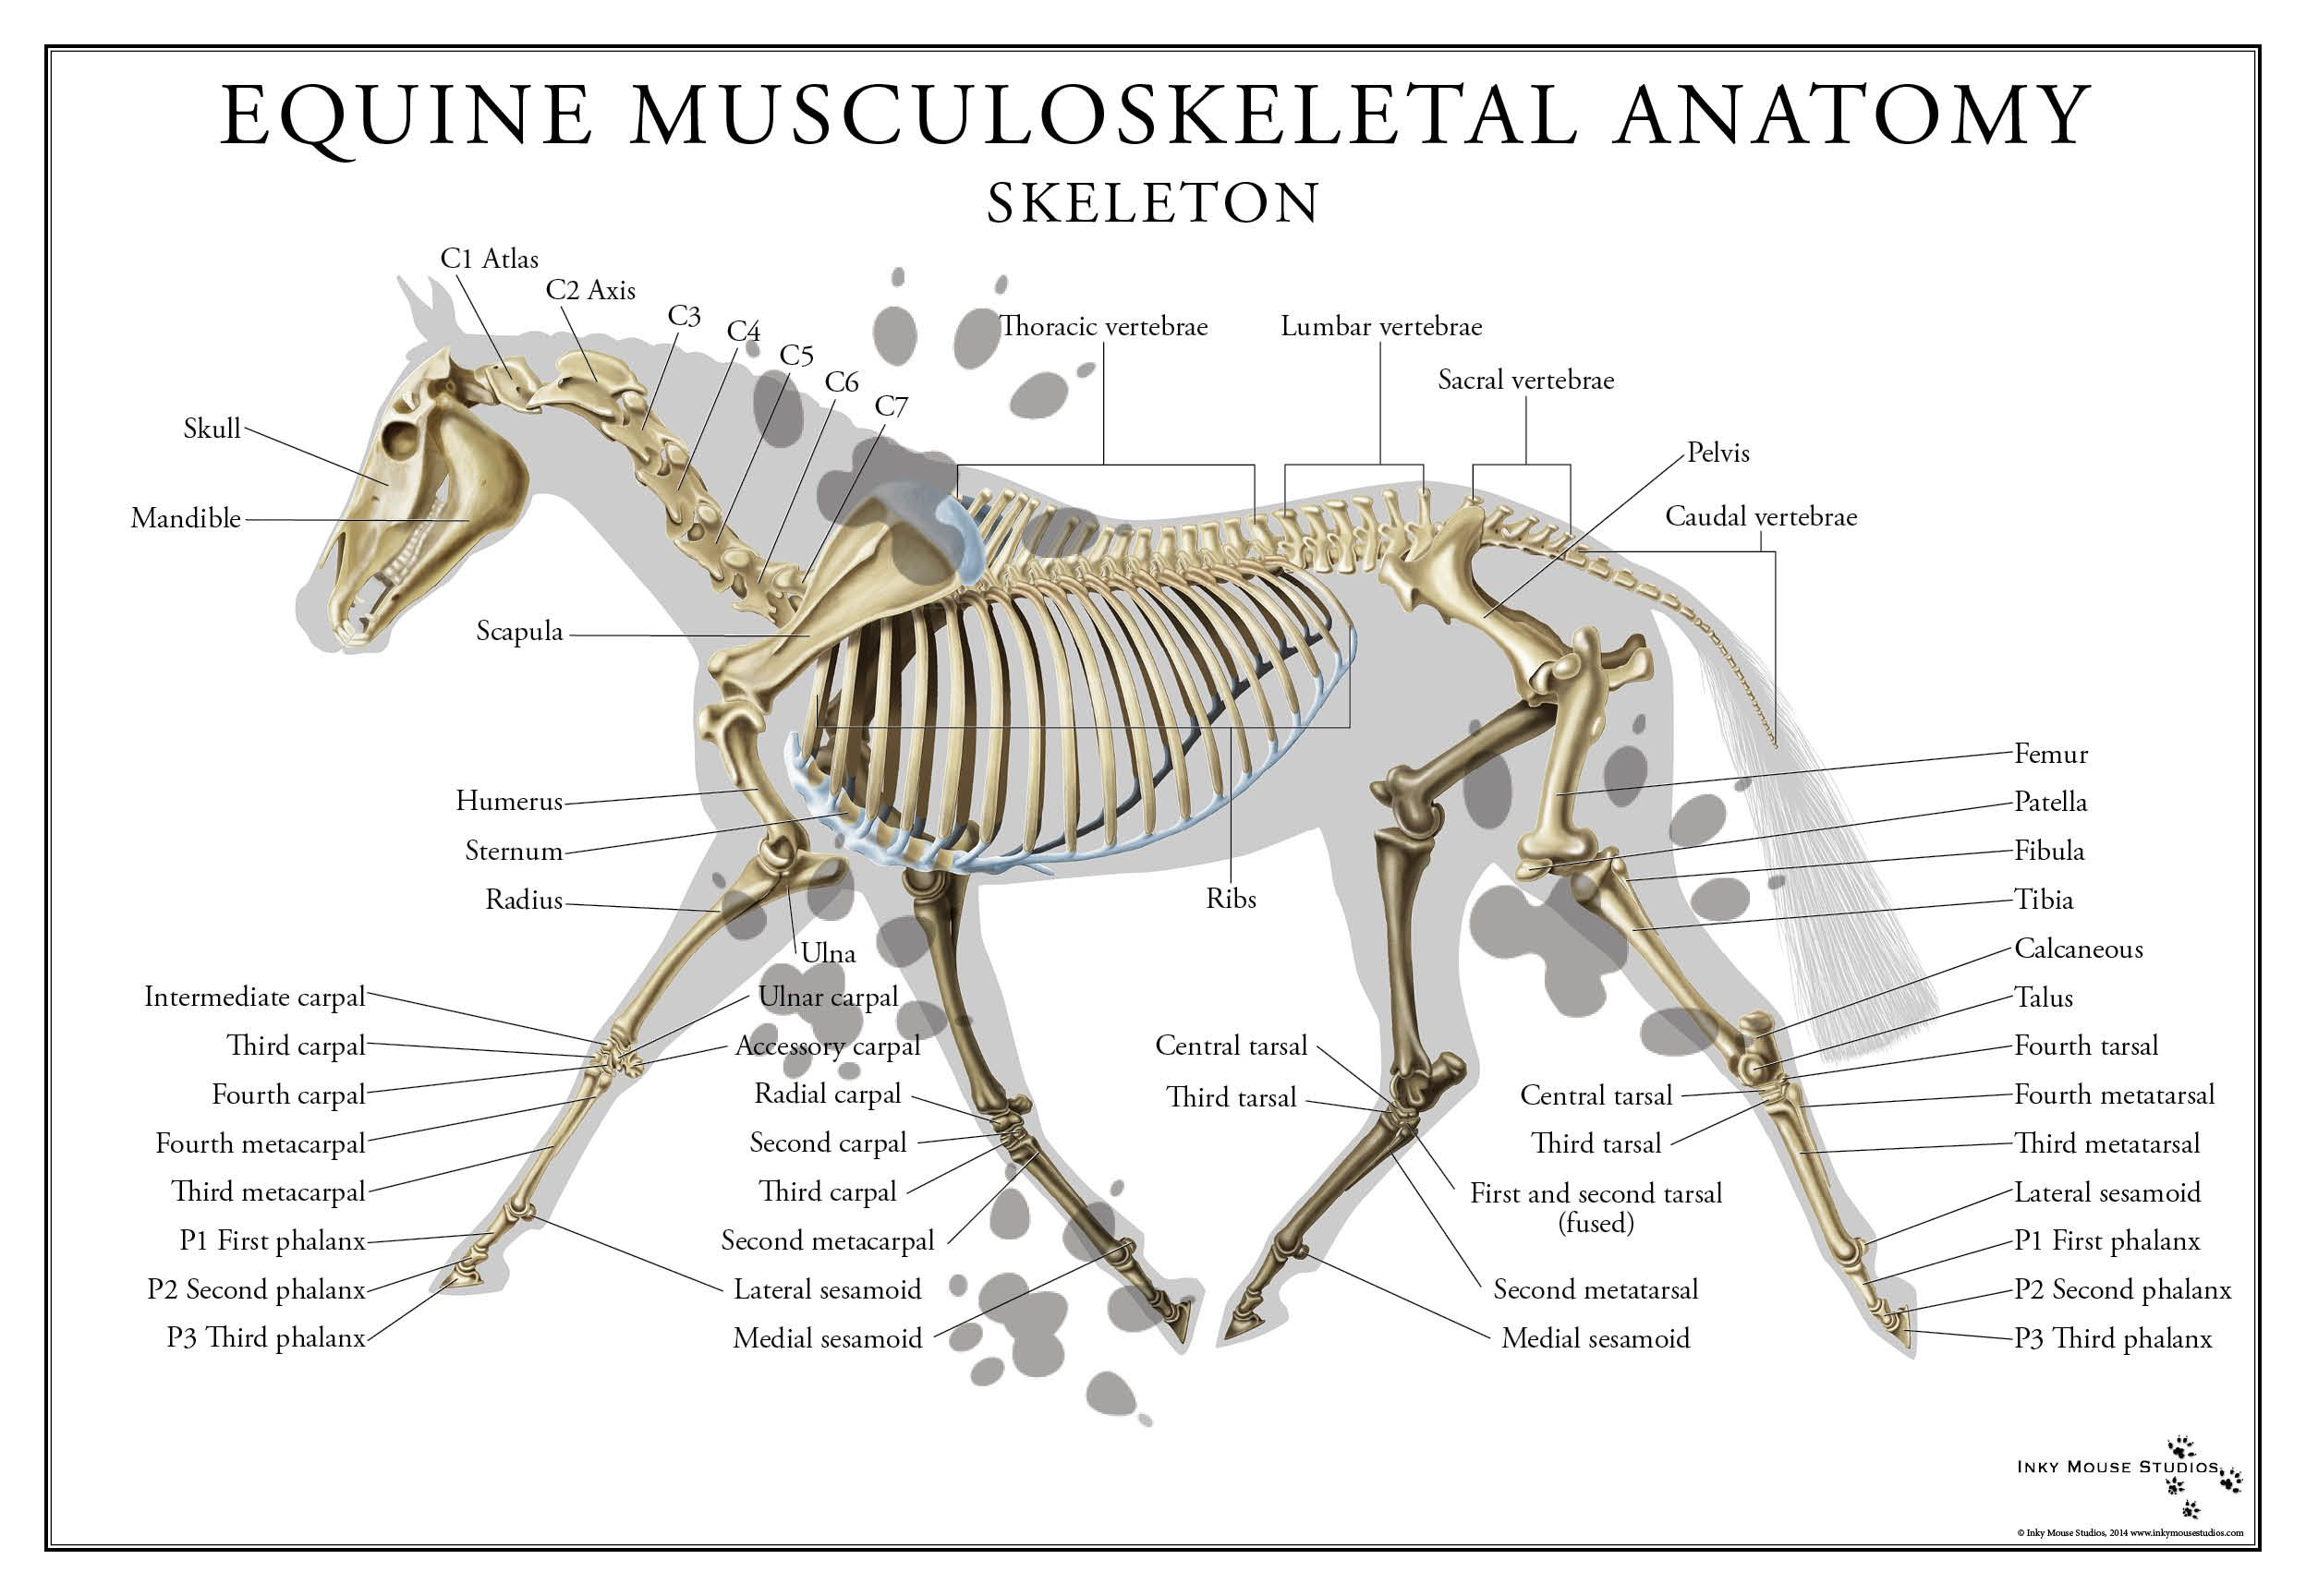 full color poster of the equine skeletal system perfect for a classroom or clinical setting  [ 2496 x 1728 Pixel ]